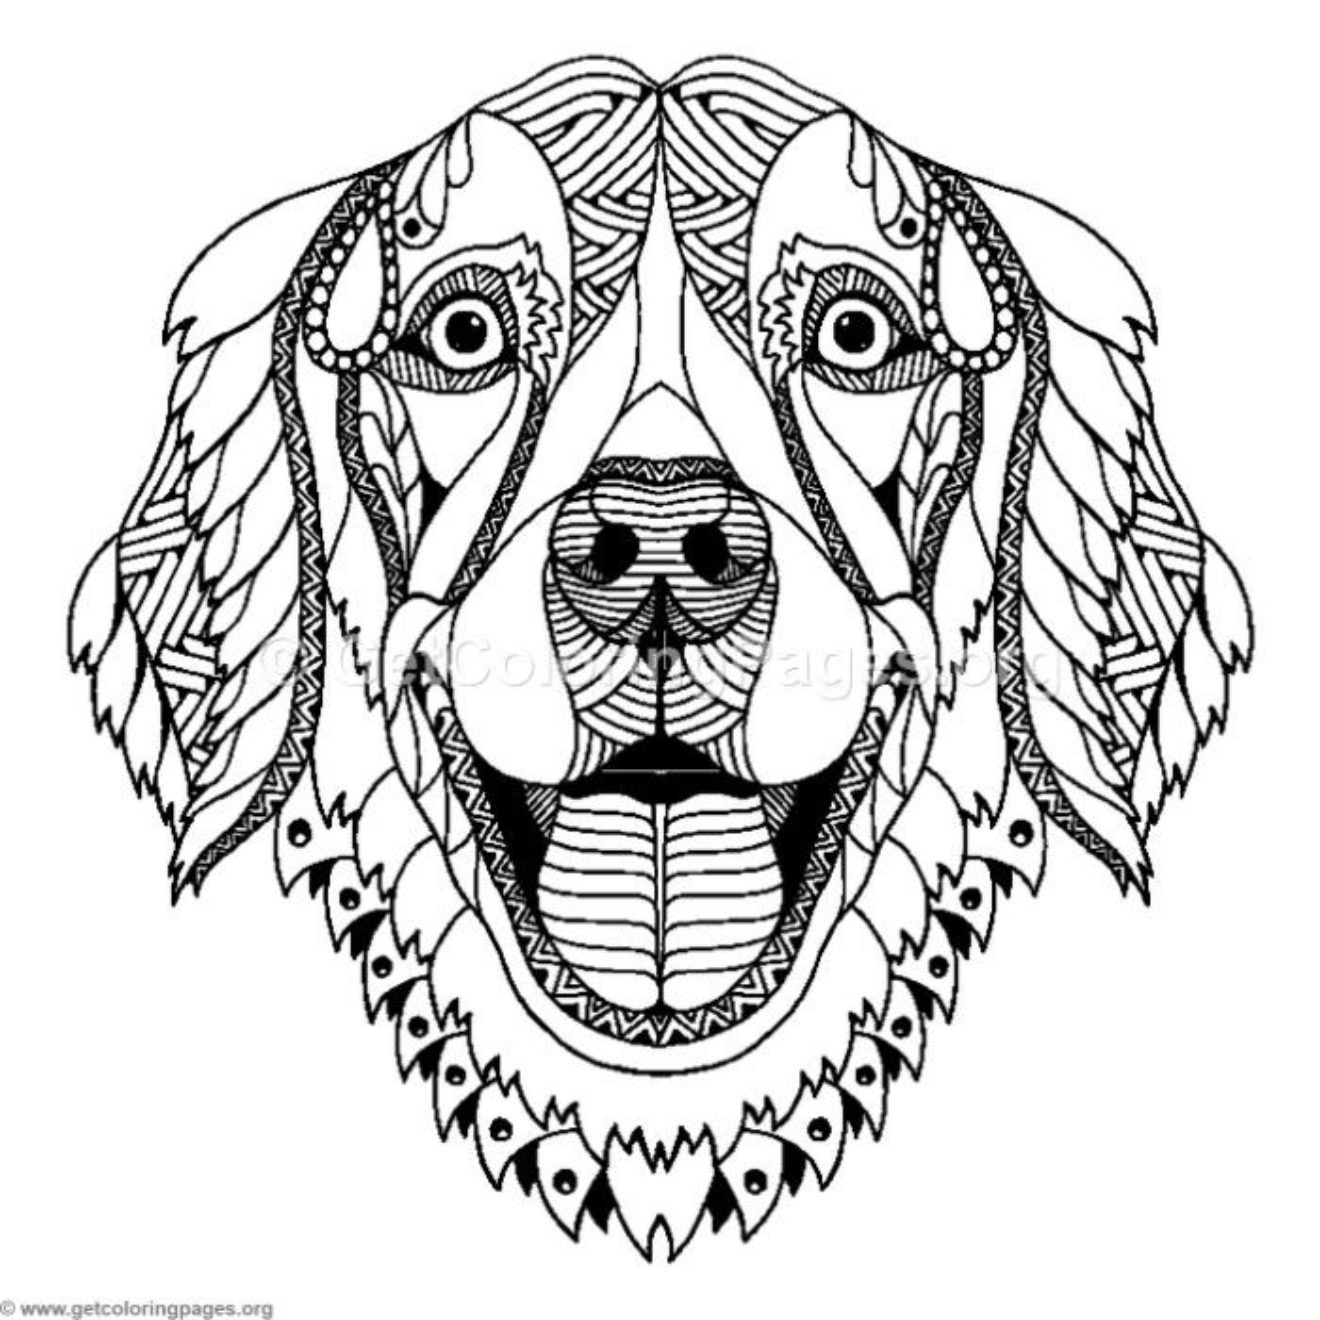 Zentangle Dog Coloring Pages Getcoloringpages Org